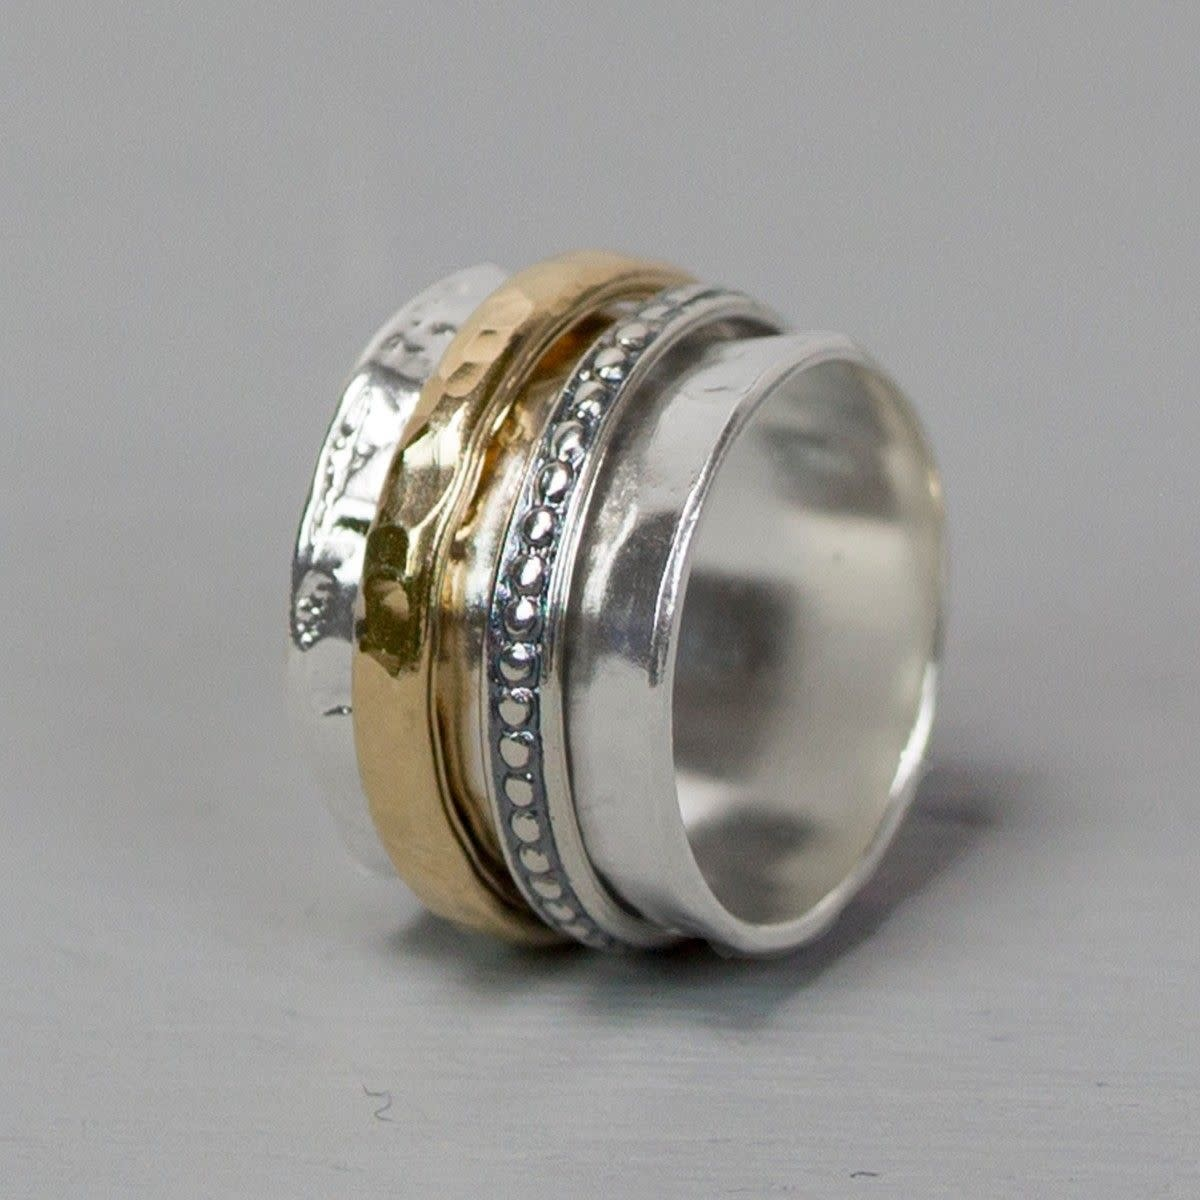 Ring Silver + Gold Filled 20099-3